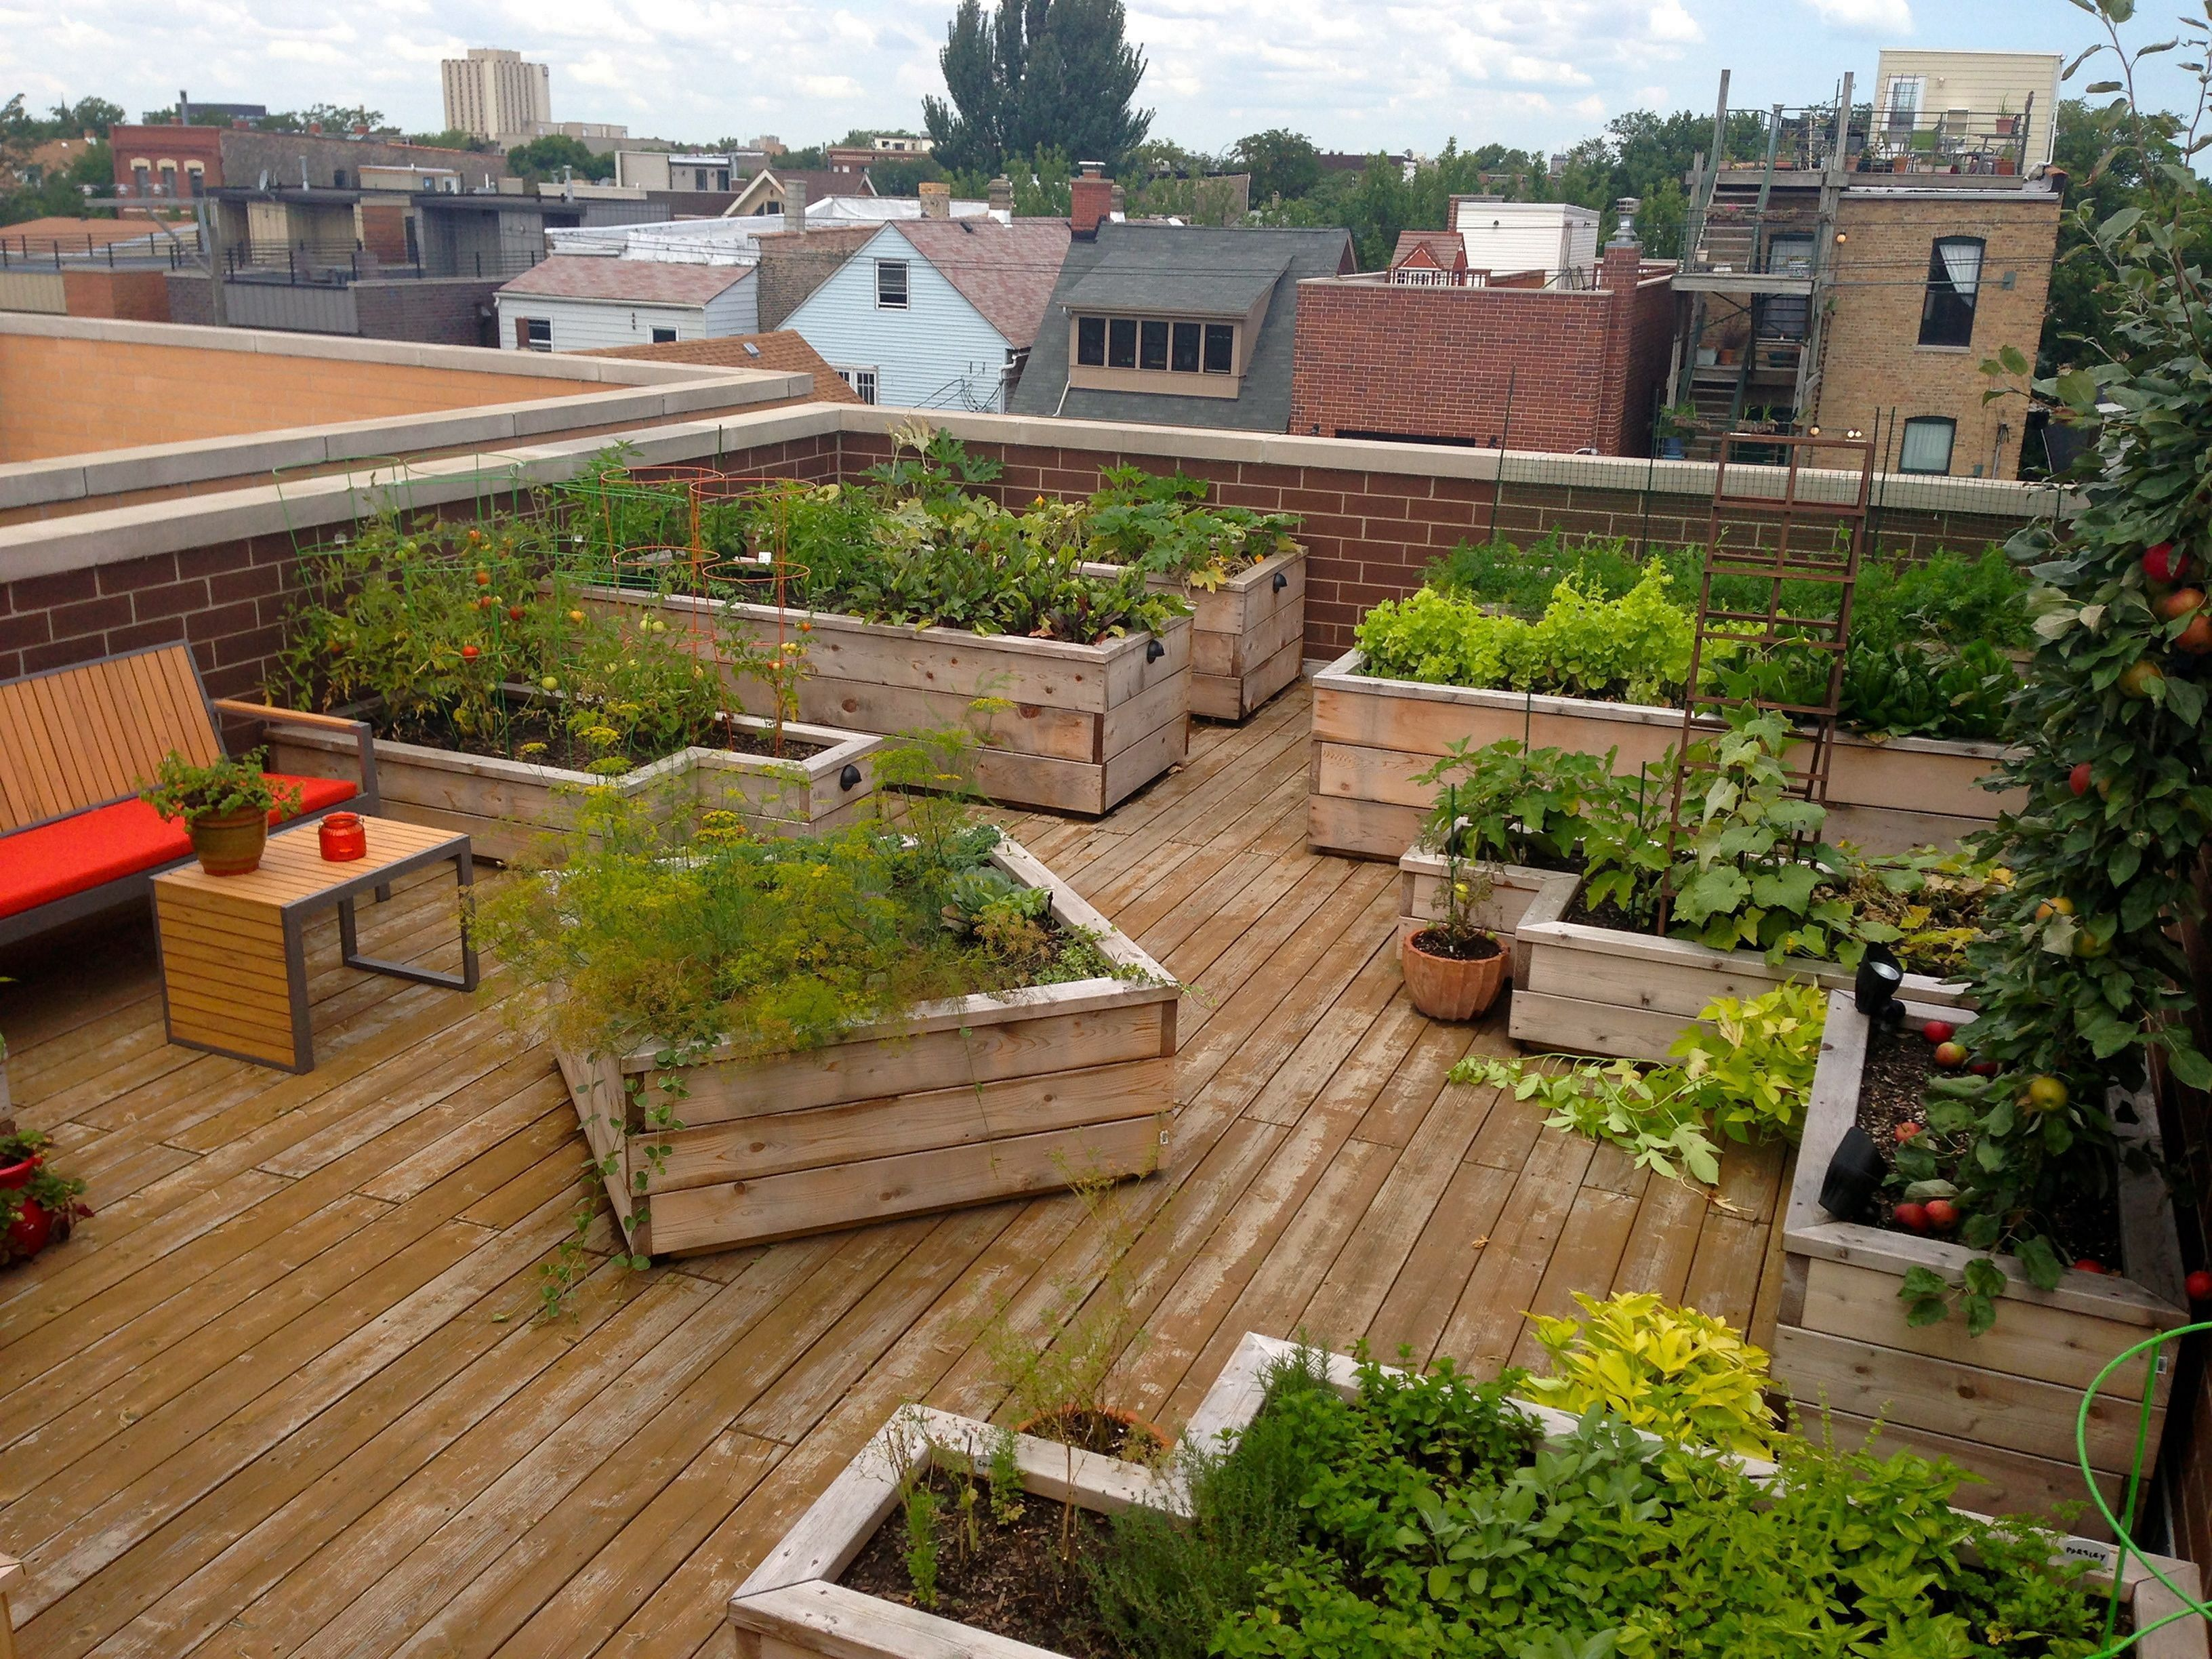 33 Beautiful Rooftop Garden Design Ideas To Adding Your Urban Home Roof Garden Design Rooftop Design Rooftop Terrace Design